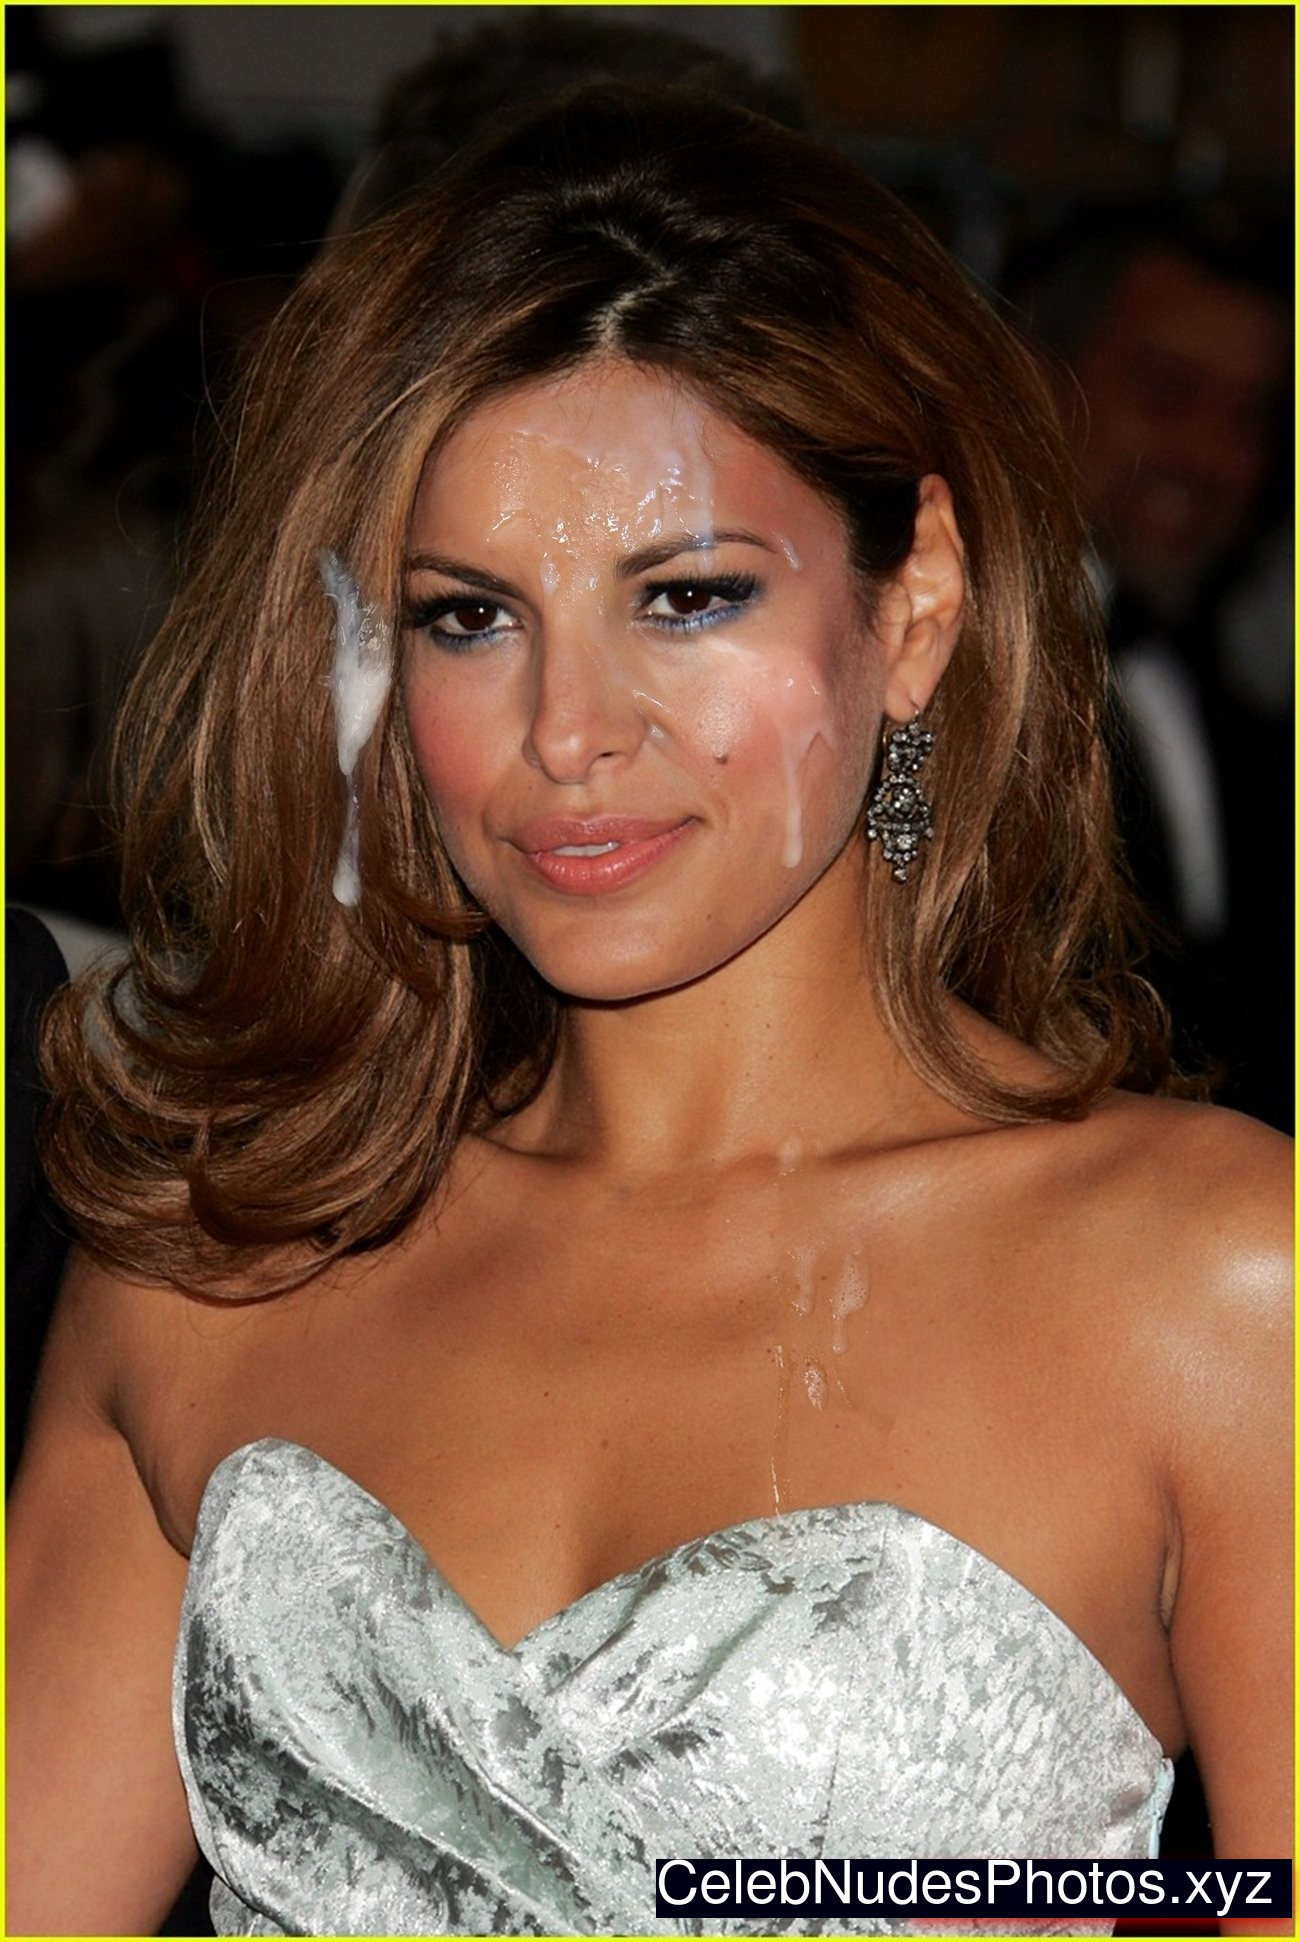 Eva Mendes free nude celebrities